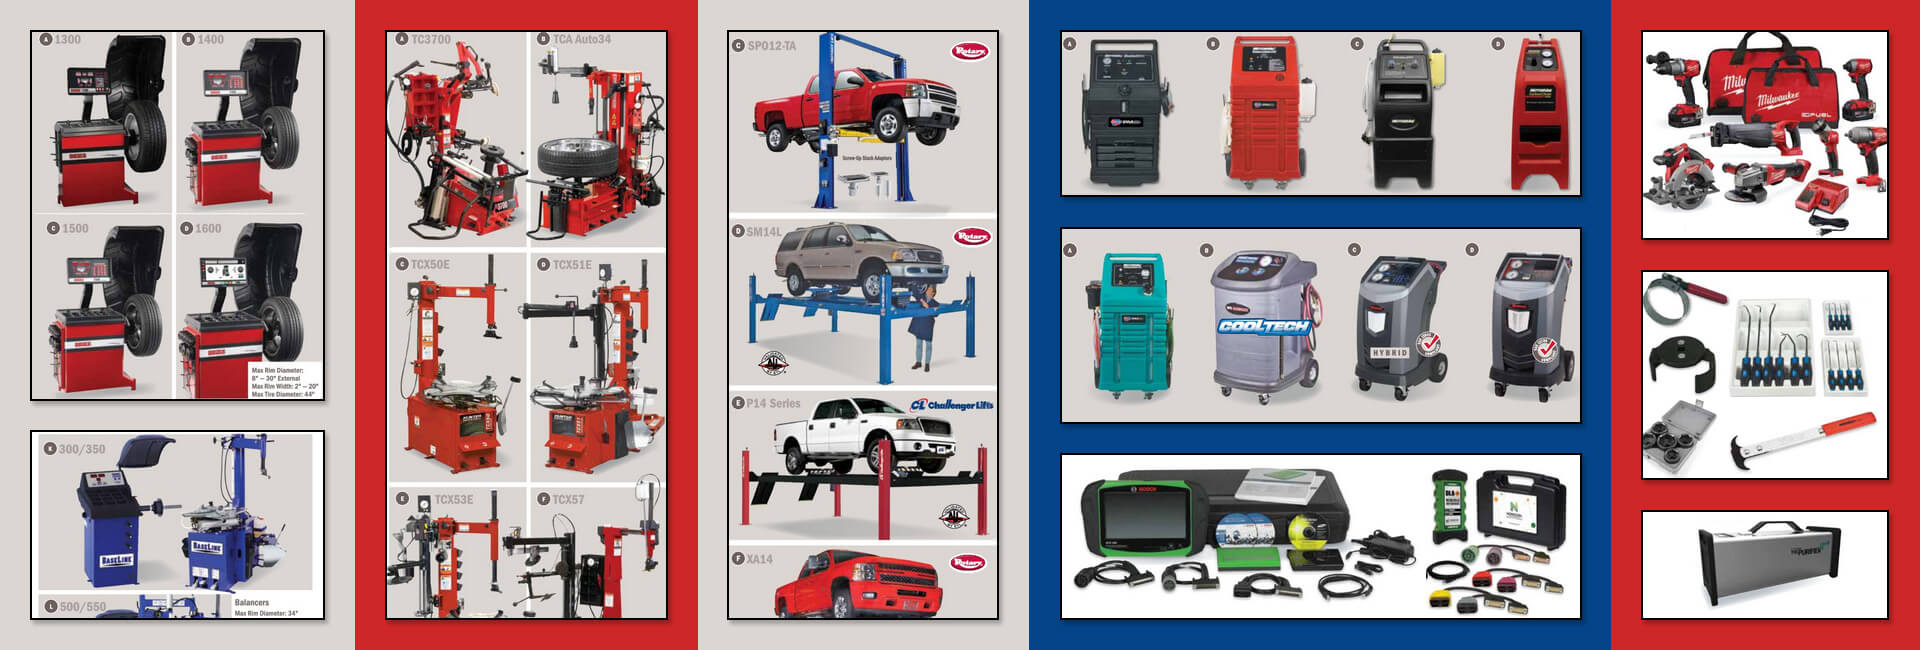 Davenports | Aftermarket Car Parts, Accessories & Auto Supply Stores